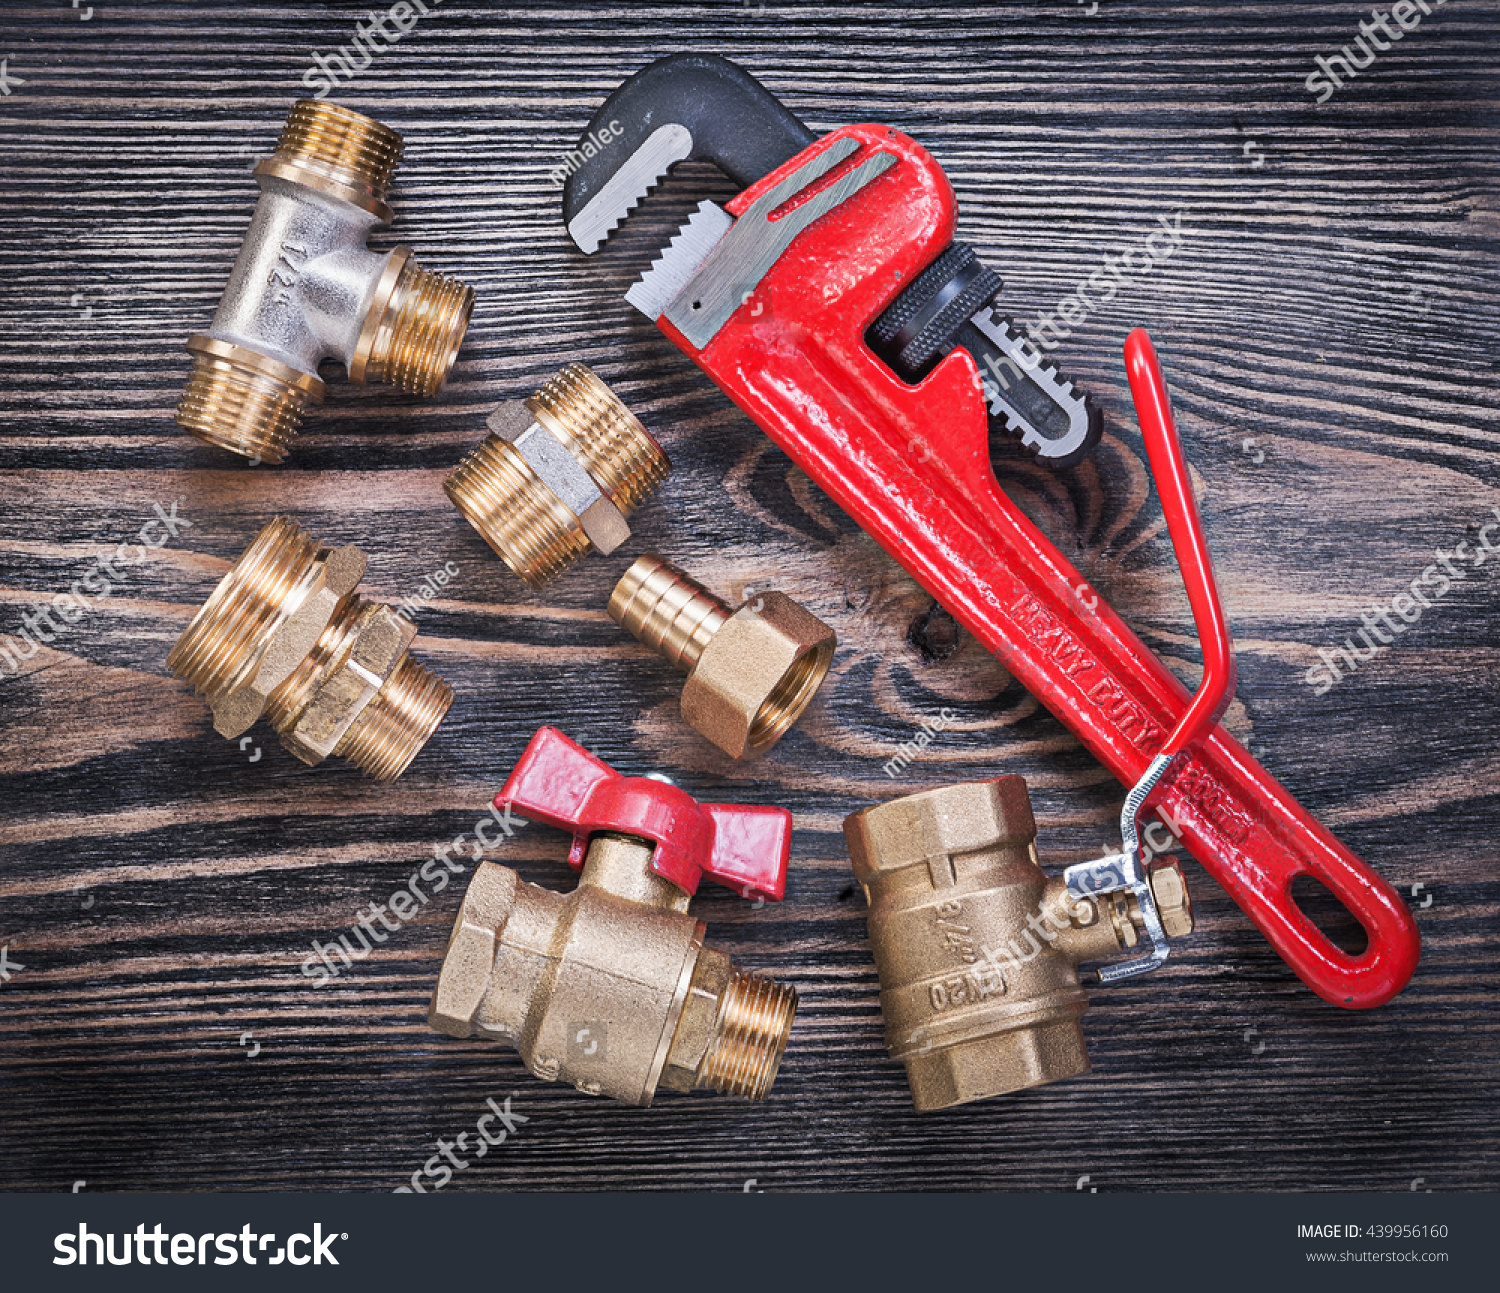 Collection of adjustable pipe wrench brass fittings water